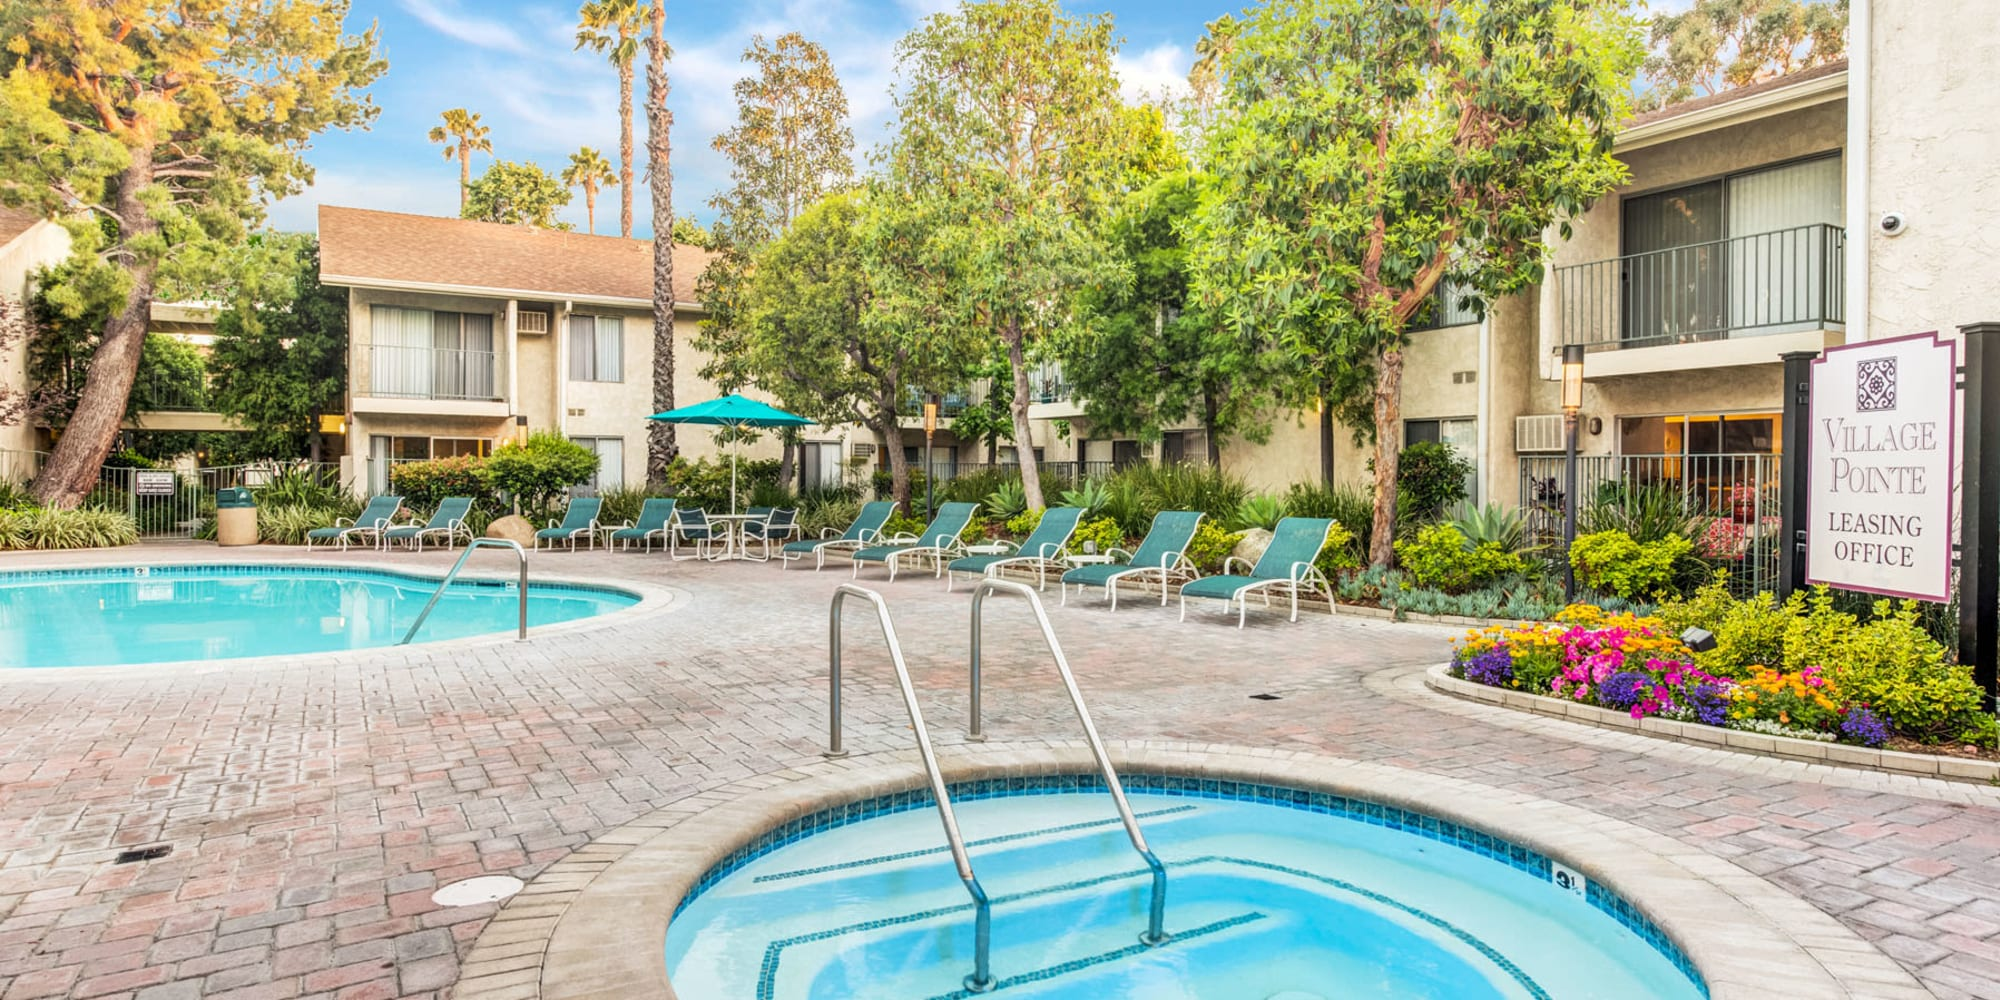 Beautiful morning at the spa and swimming pool area at Village Pointe in Northridge, California